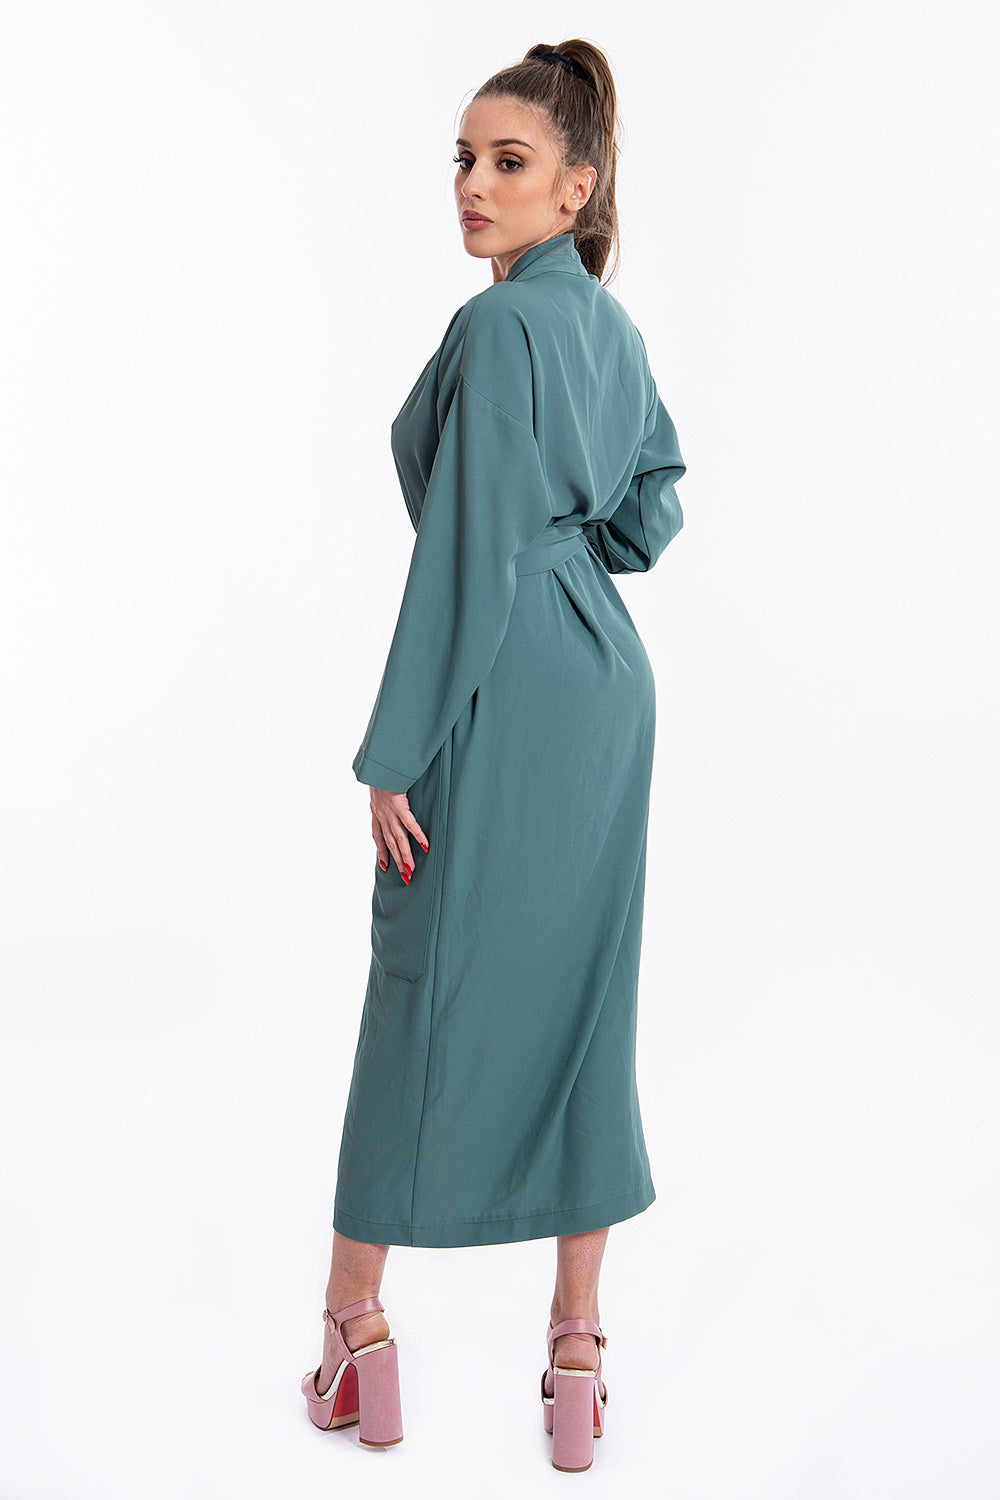 Tensione midi robe dress with waist belt